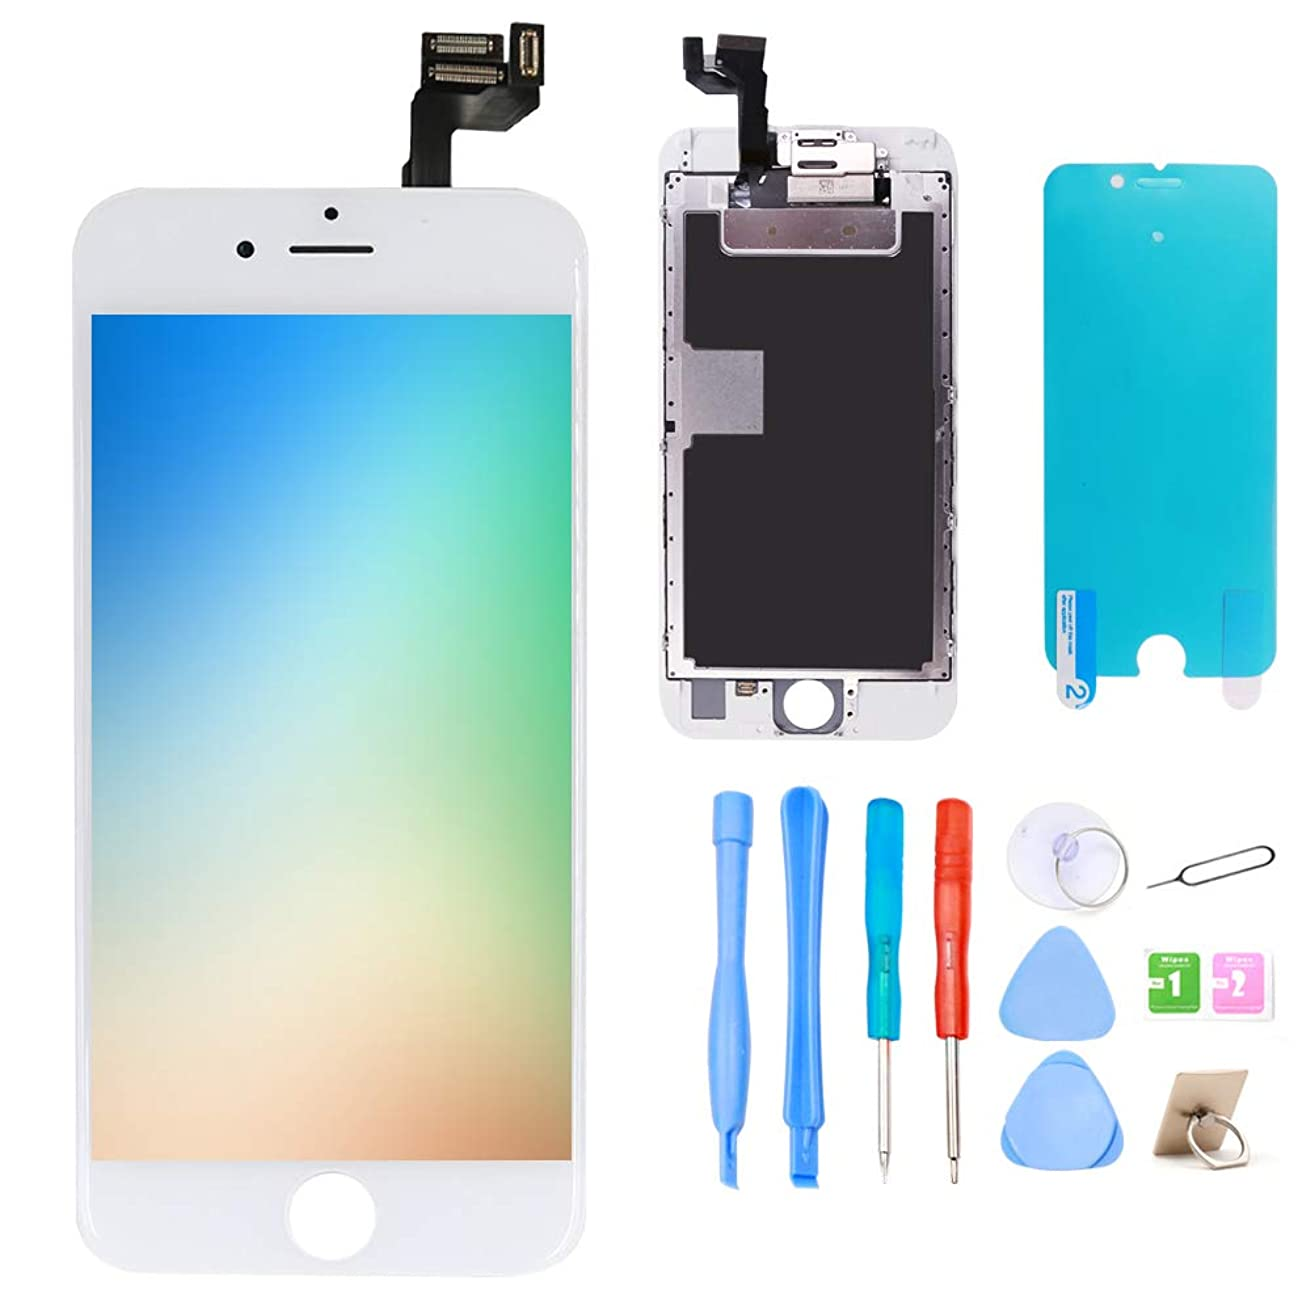 Srinea Screen Replacement for iPhone 6S 4.7'' White, LCD Display Touch Screen with Front Camera, Proximity Sensor, Ear Speaker, Digitizer Frame Assembly and Full Repair Kit for iPhone 6S …